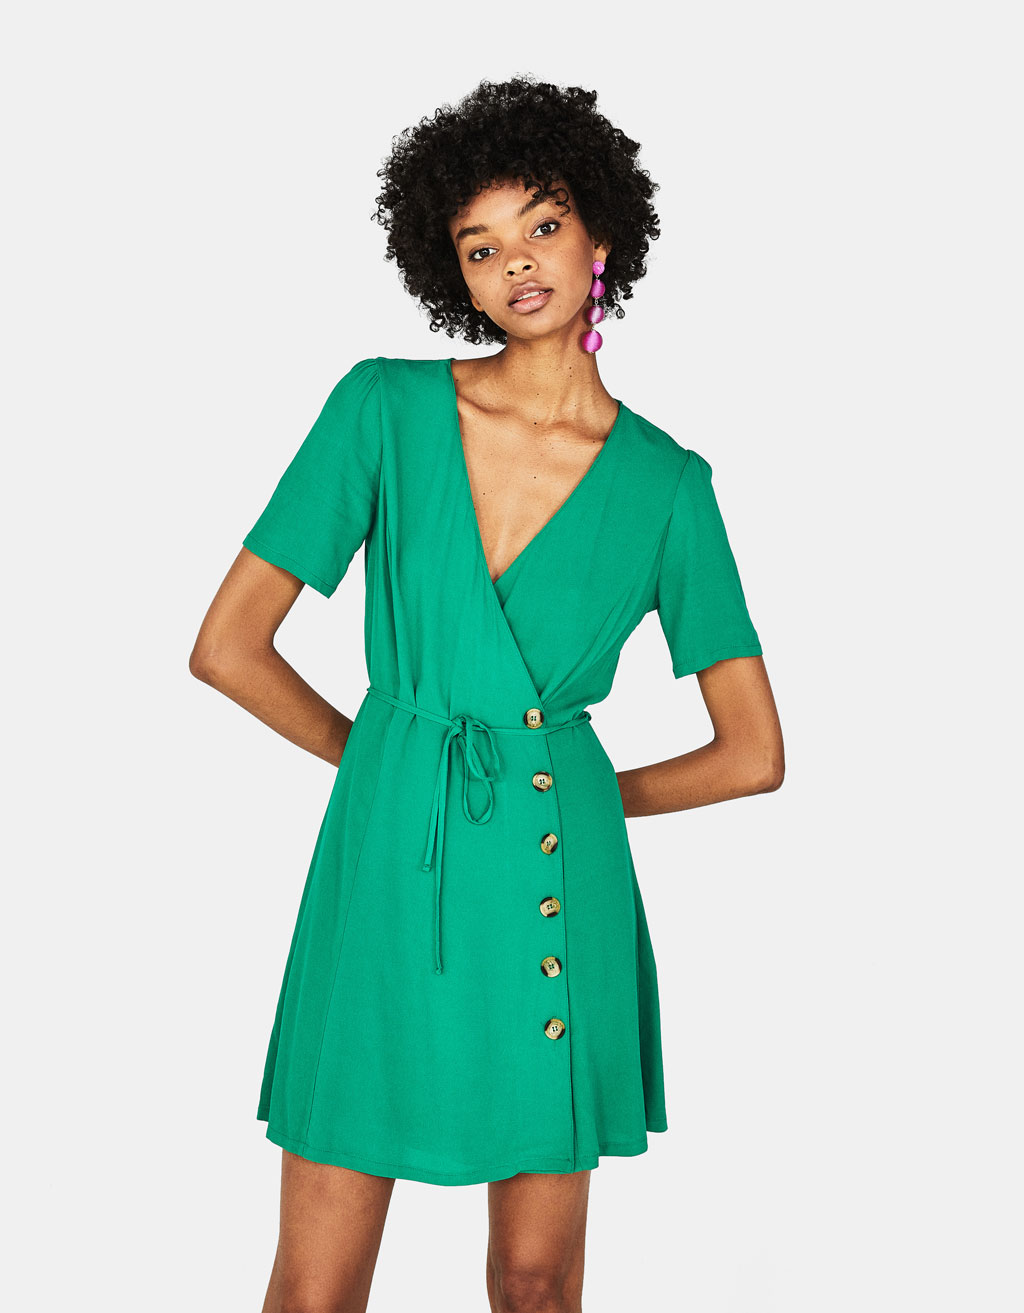 Crossover neckline dress